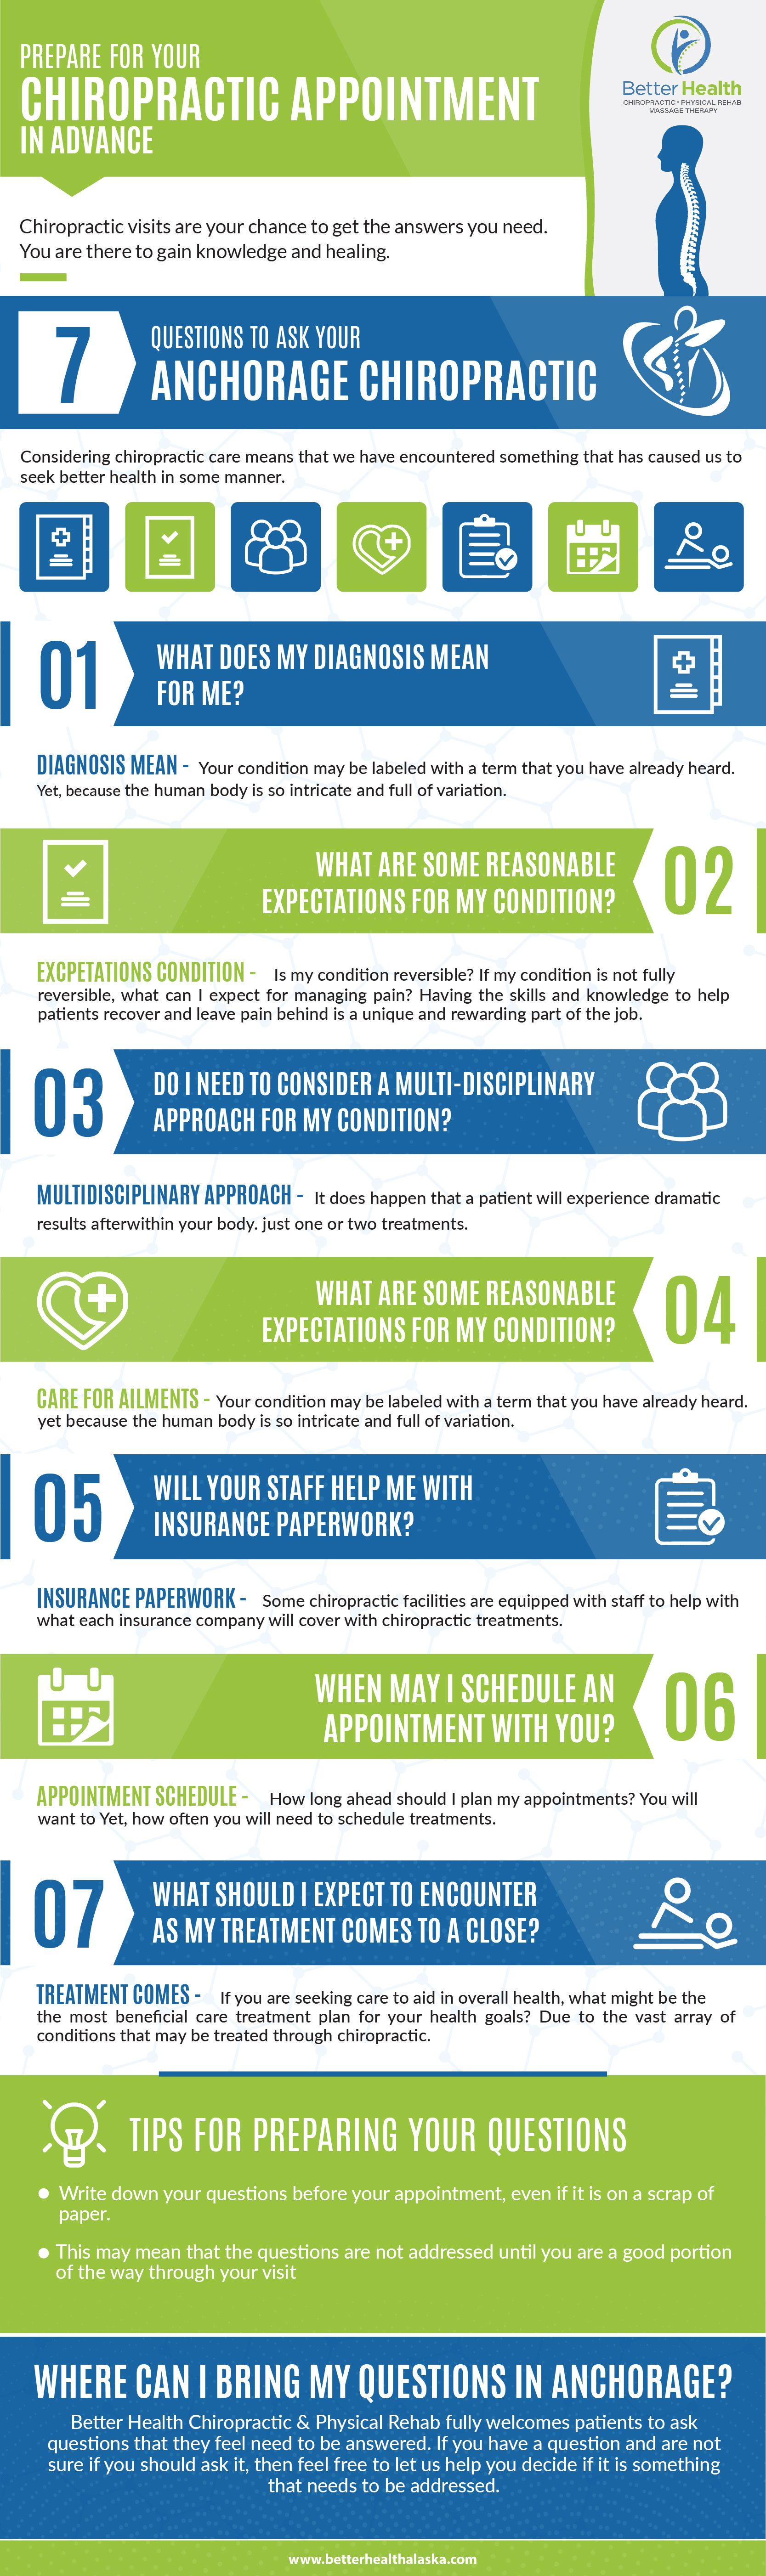 7 Questions to Ask Your Anchorage Chiropractor Infographic